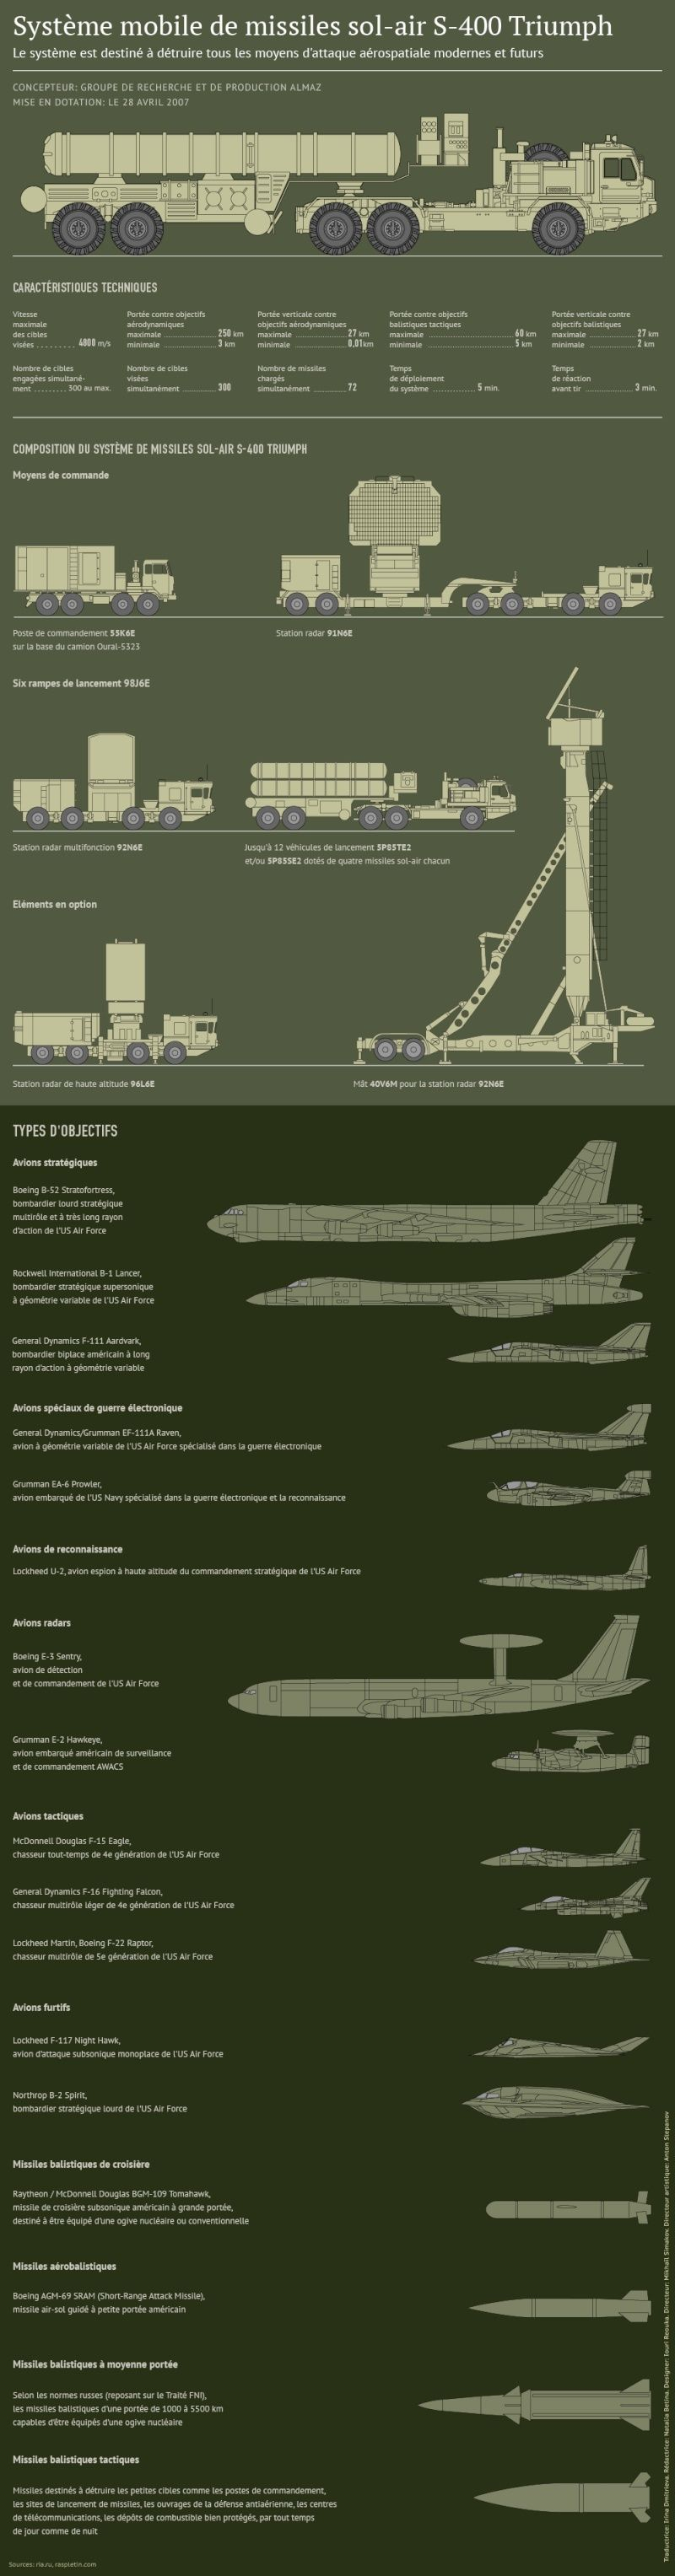 Armée Russe / Armed Forces of the Russian Federation - Page 6 127